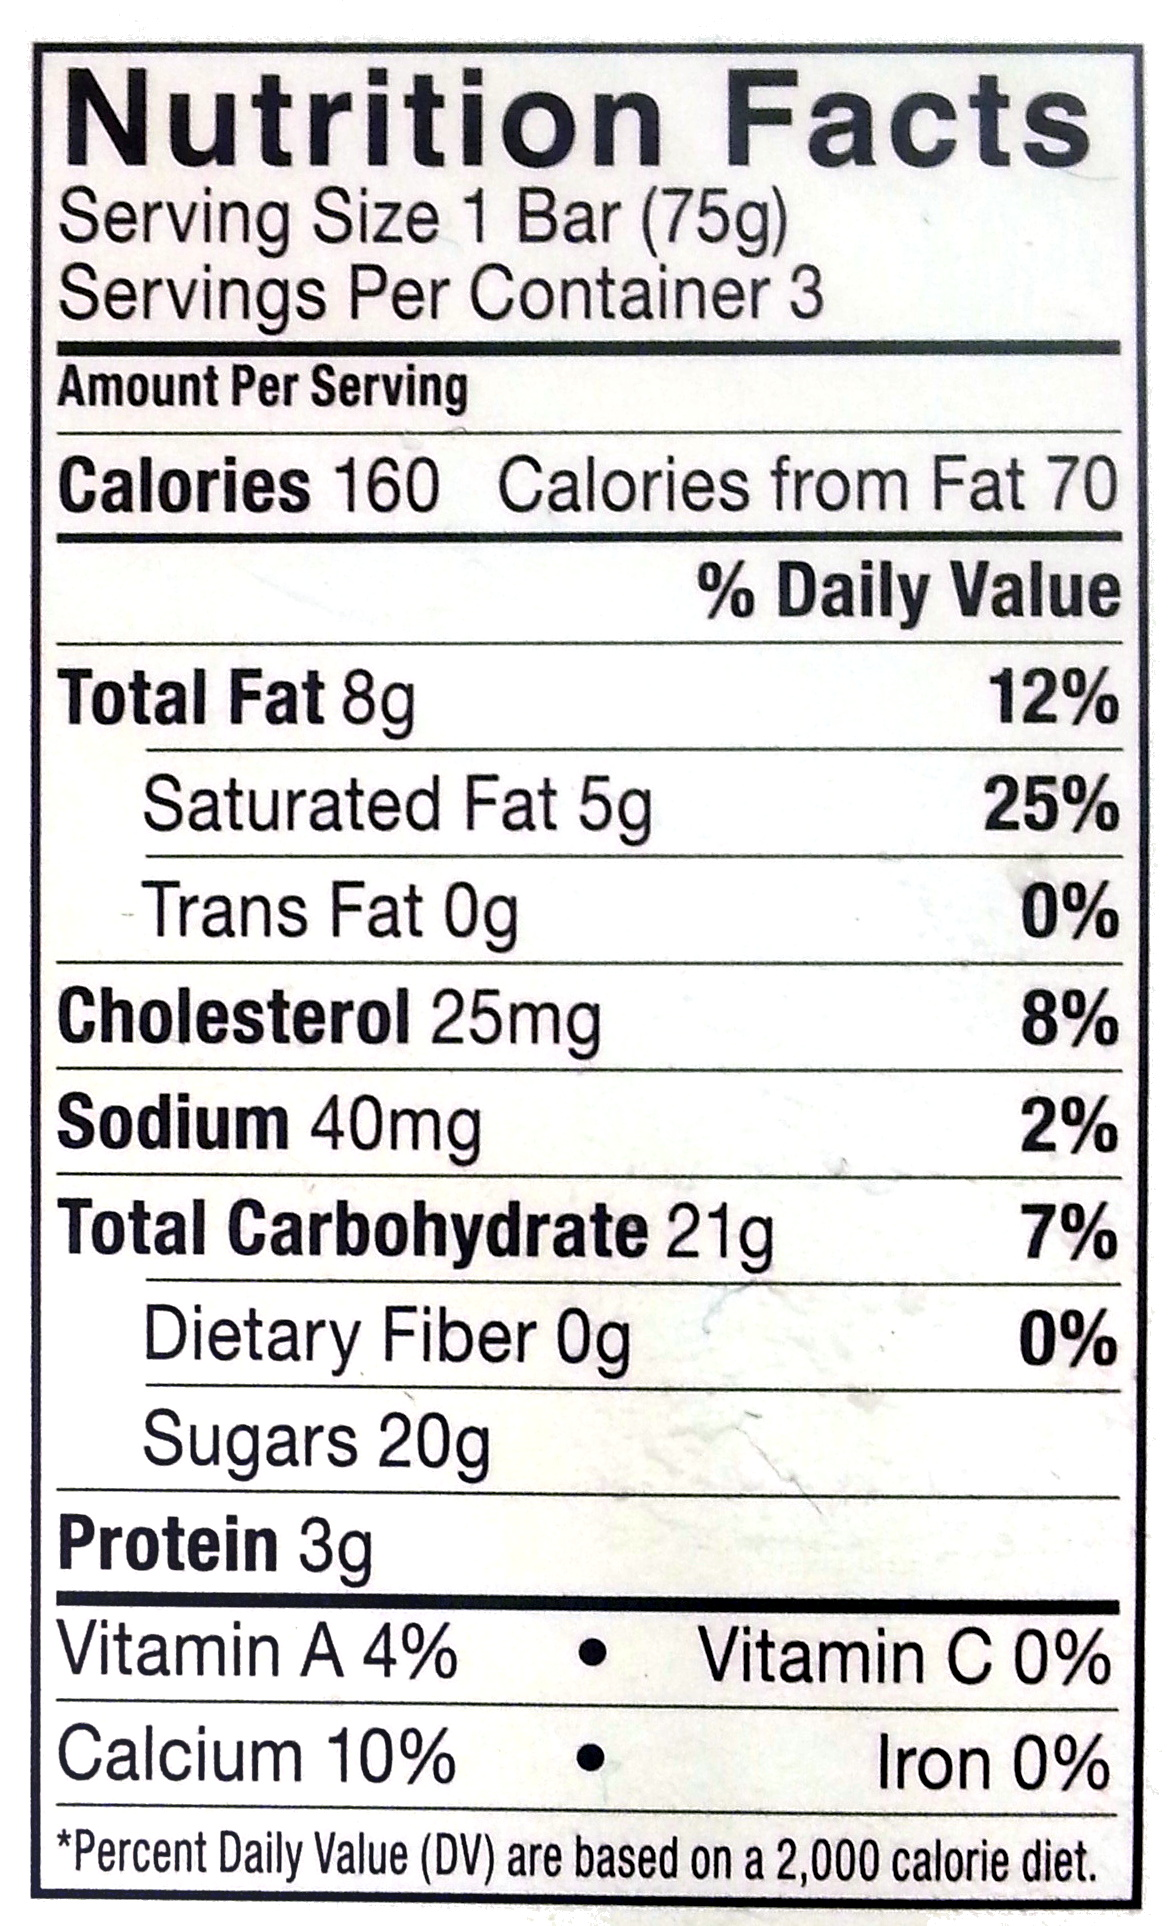 Gelato Pop Mediterranean Mint dipped in rich dark chovcolate - Nutrition facts - en